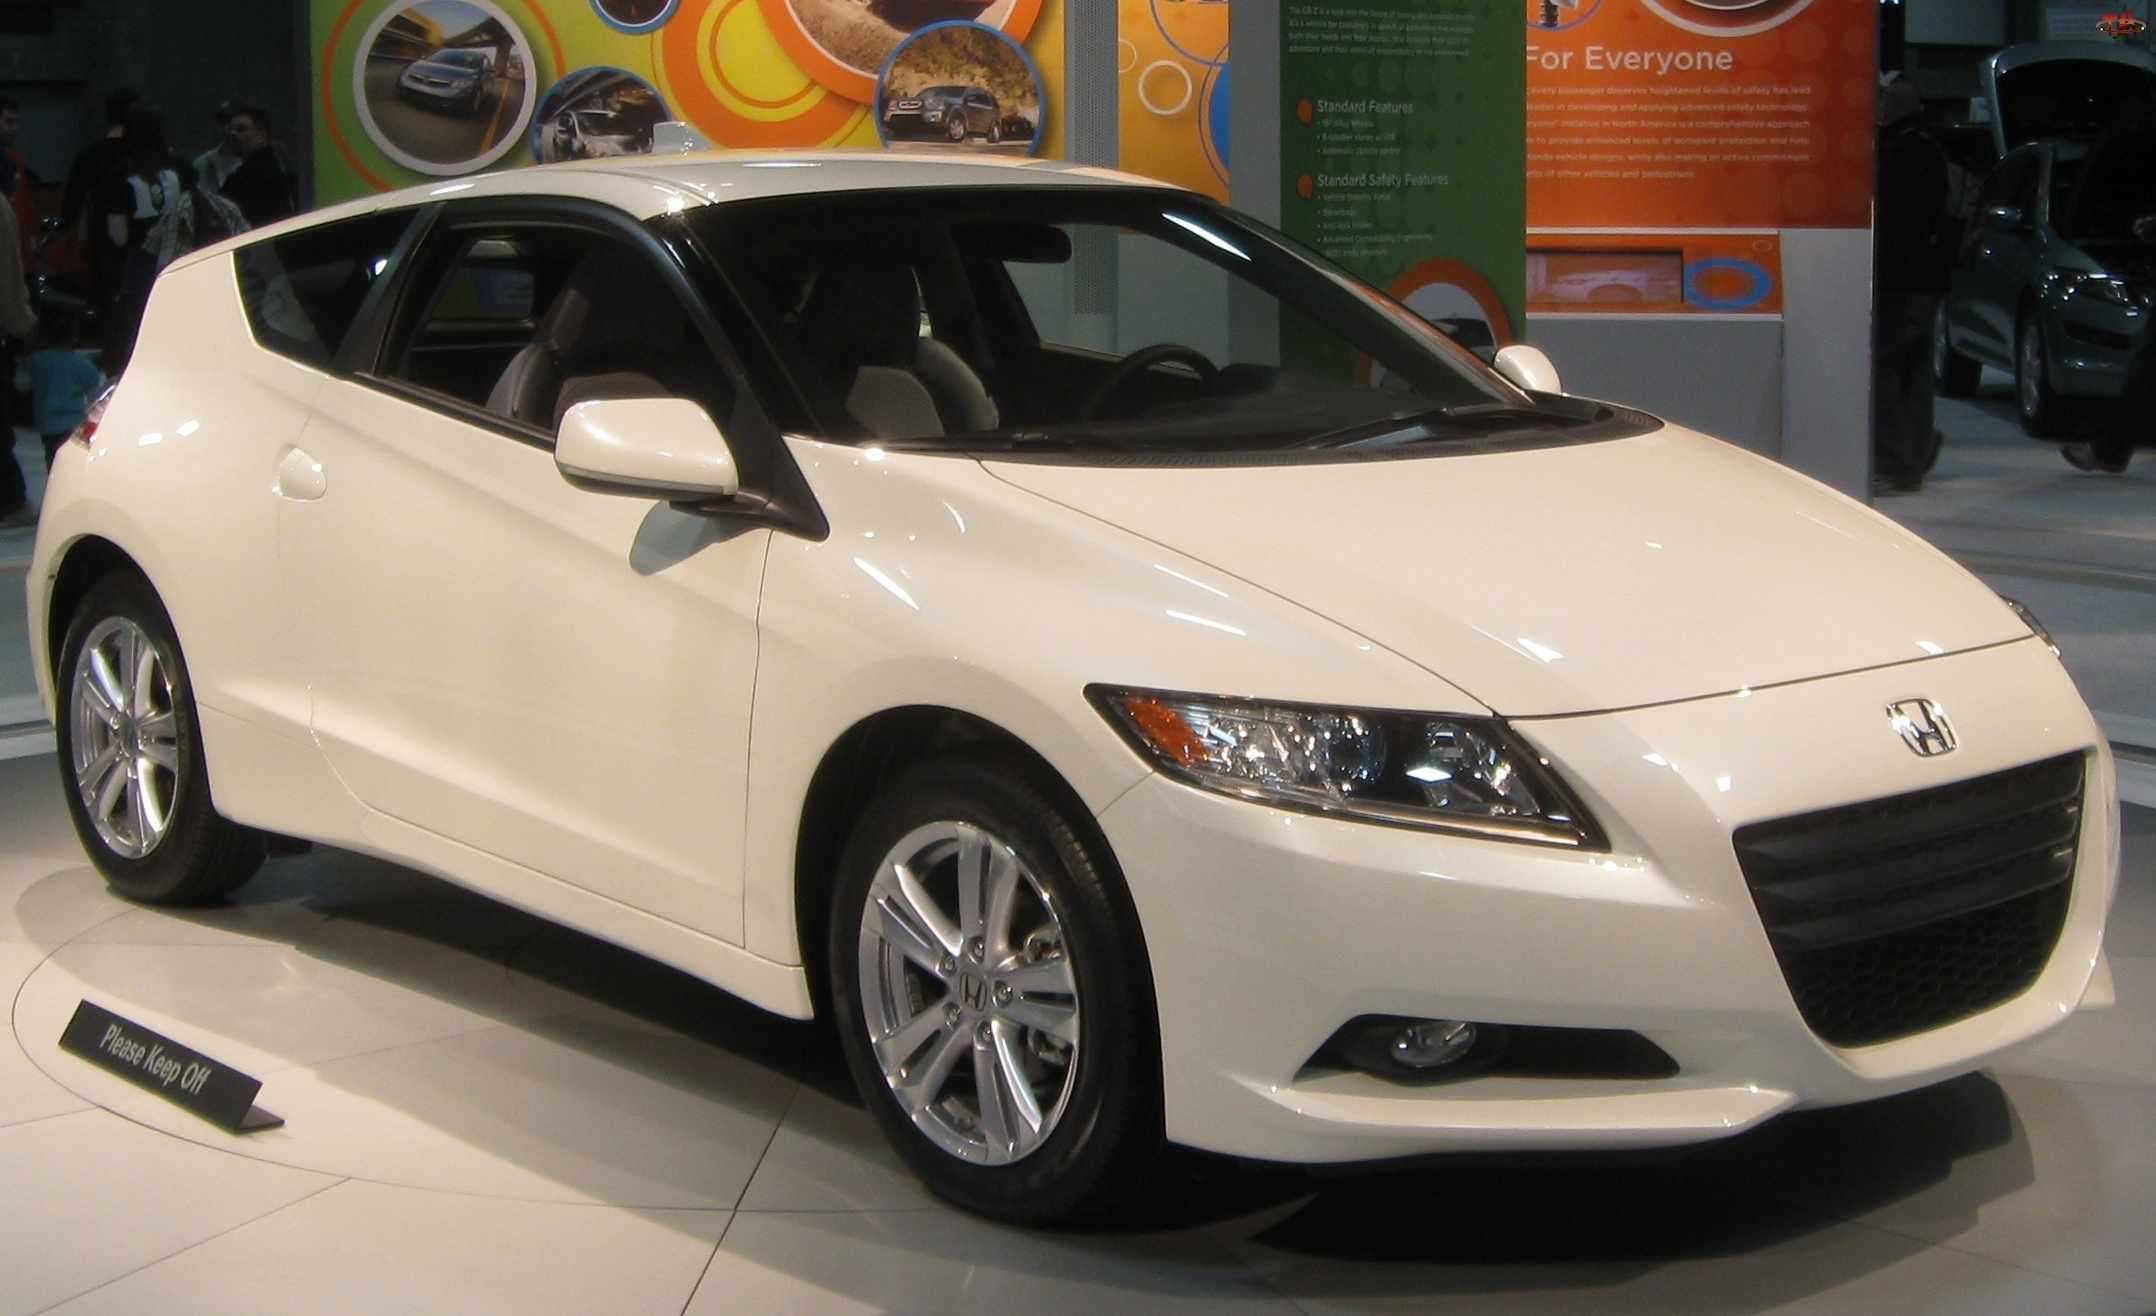 Honda CR-Z, Hatchback